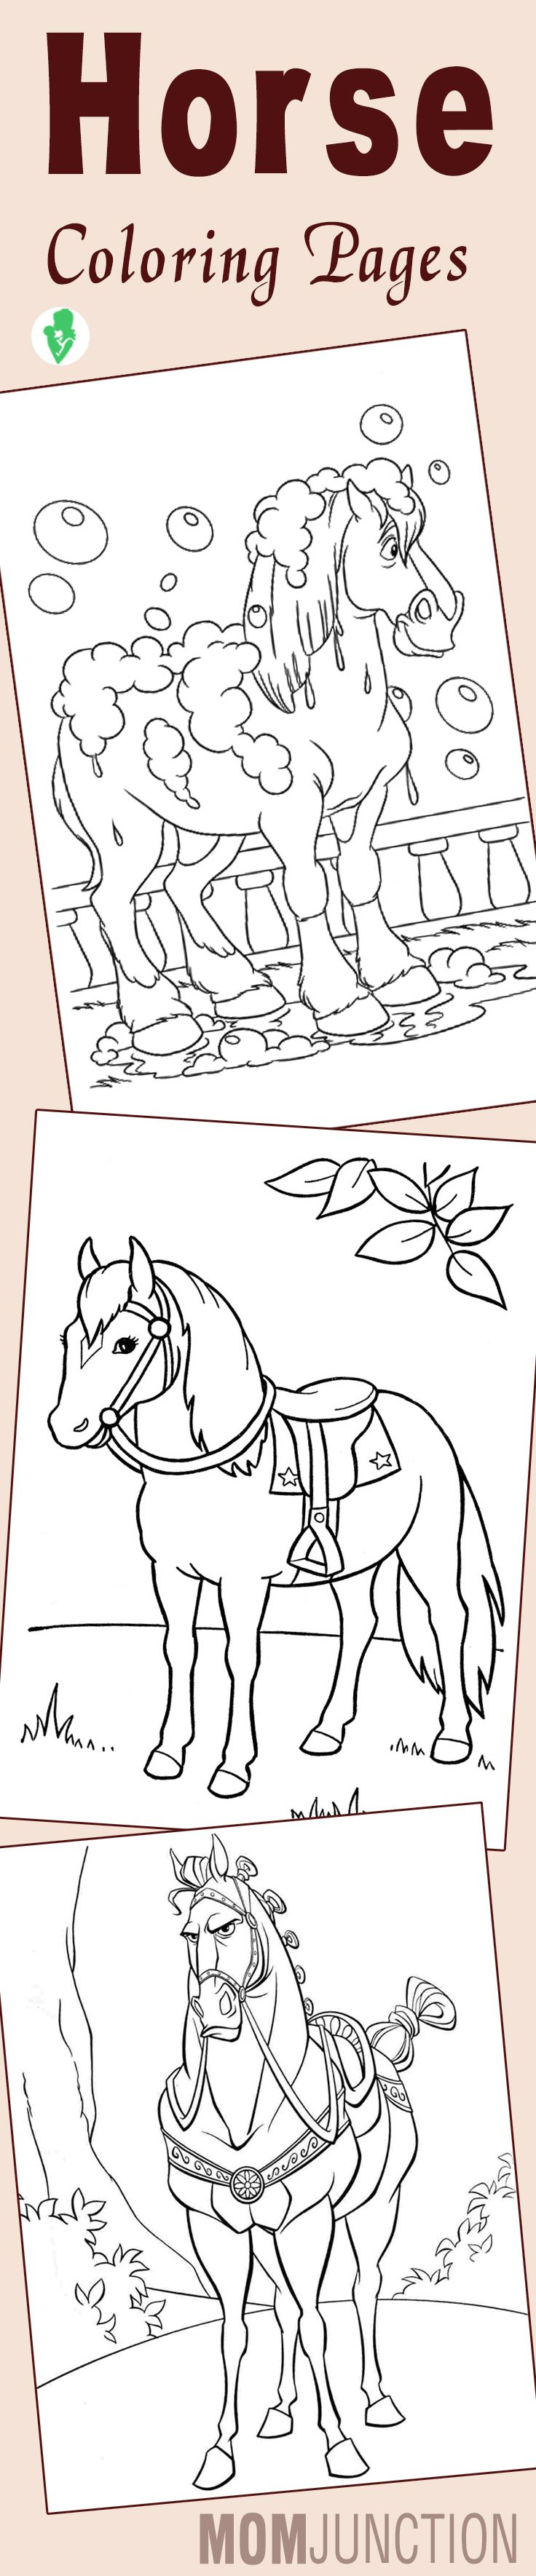 903 best coloring paper images on pinterest coloring sheets